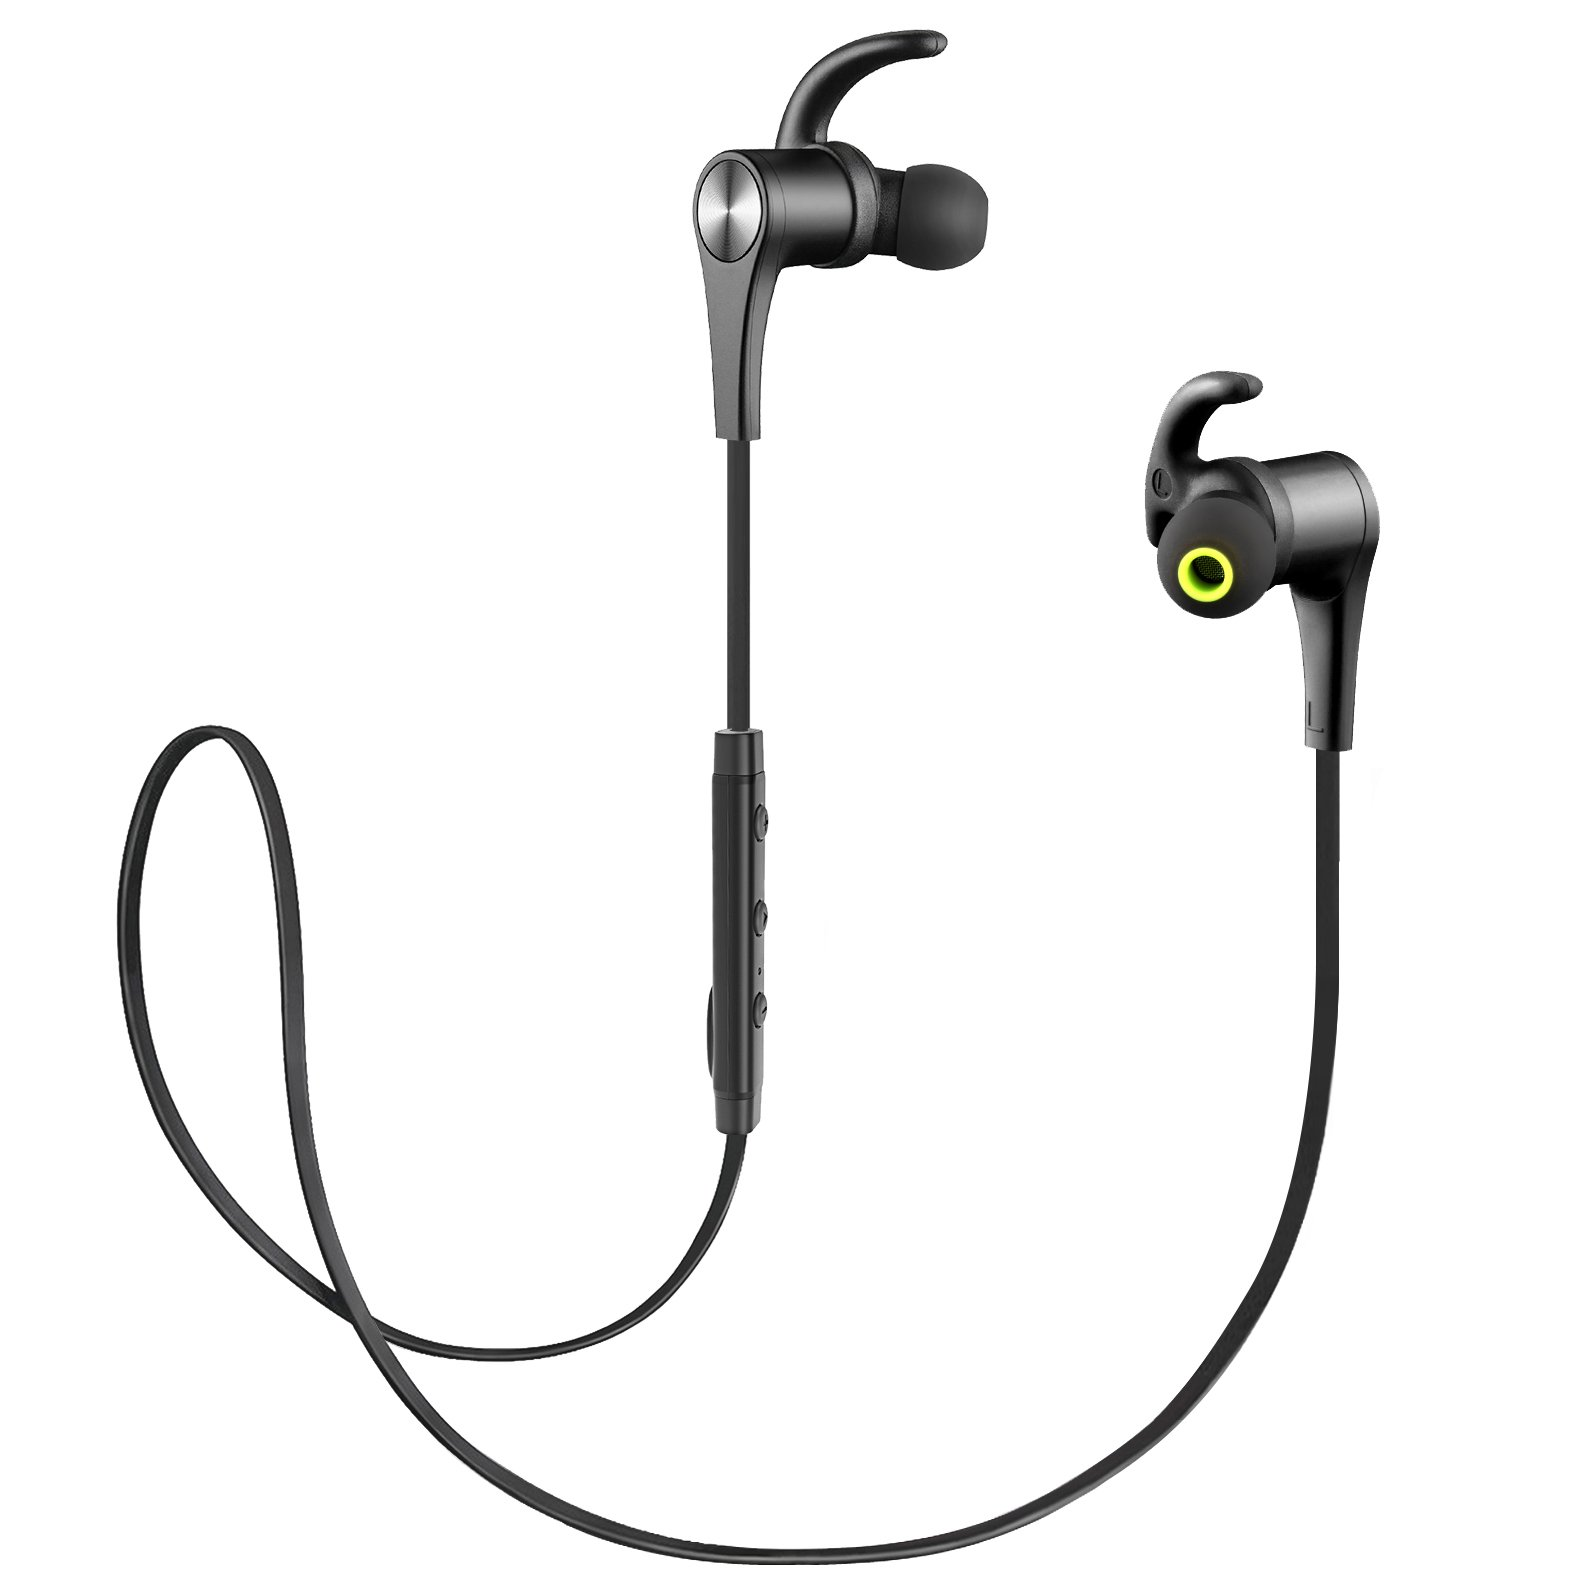 SoundPEATS Bluetooth Headphones Magnetic In-Ear Wireless Earbuds 4.1 Stereo Bluetooth Earphones for Sports Running With Mic (8 Hours Play Time, Hands-Free Calls, In-Line Control) - New Black